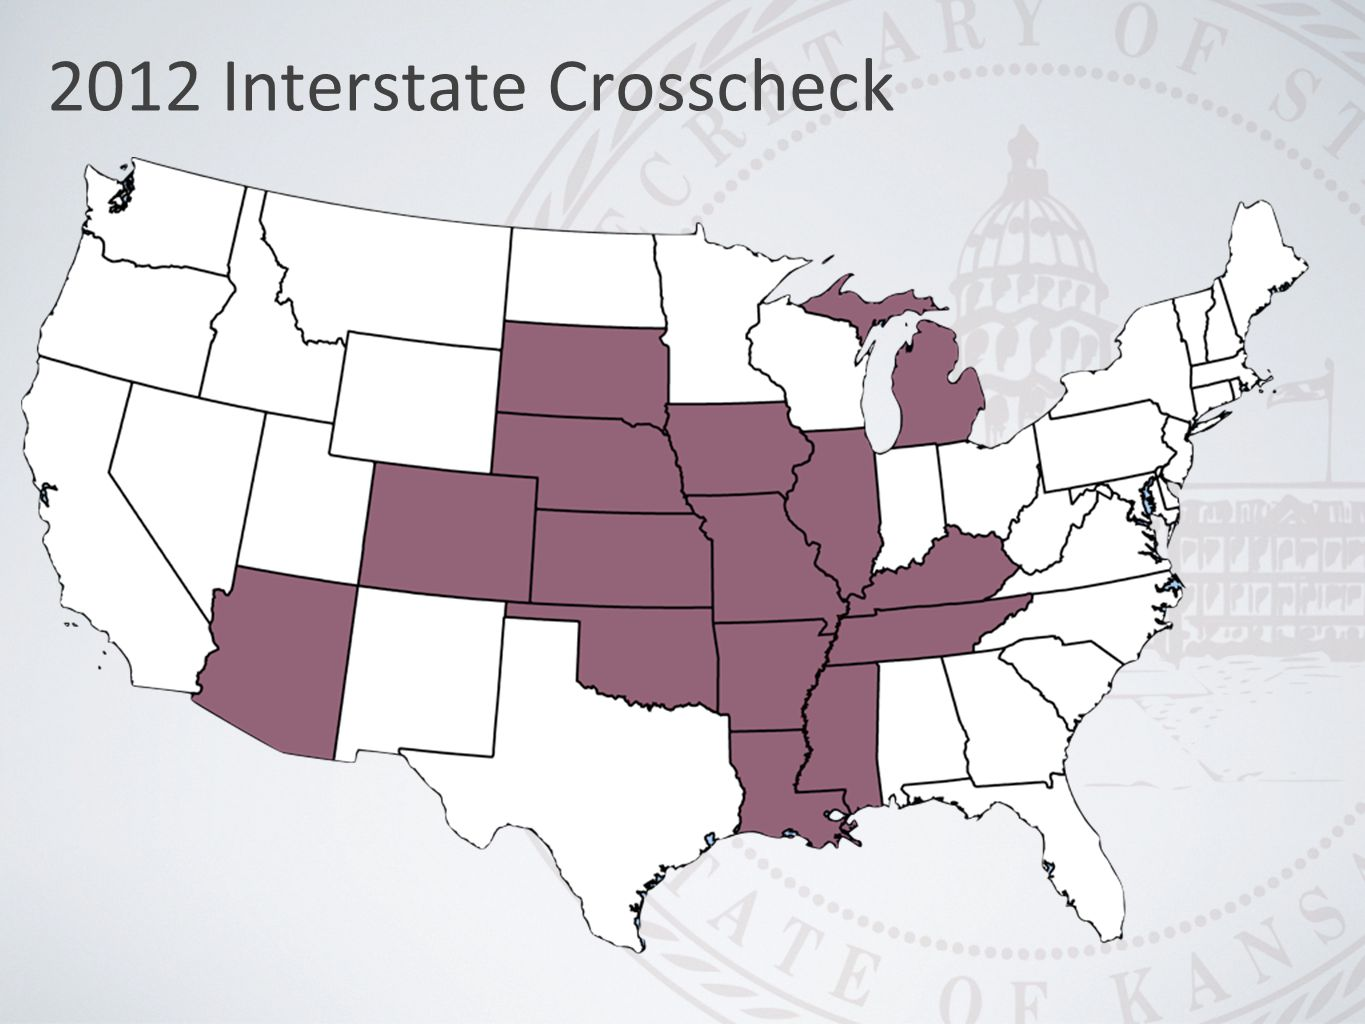 2012 Interstate Crosscheck